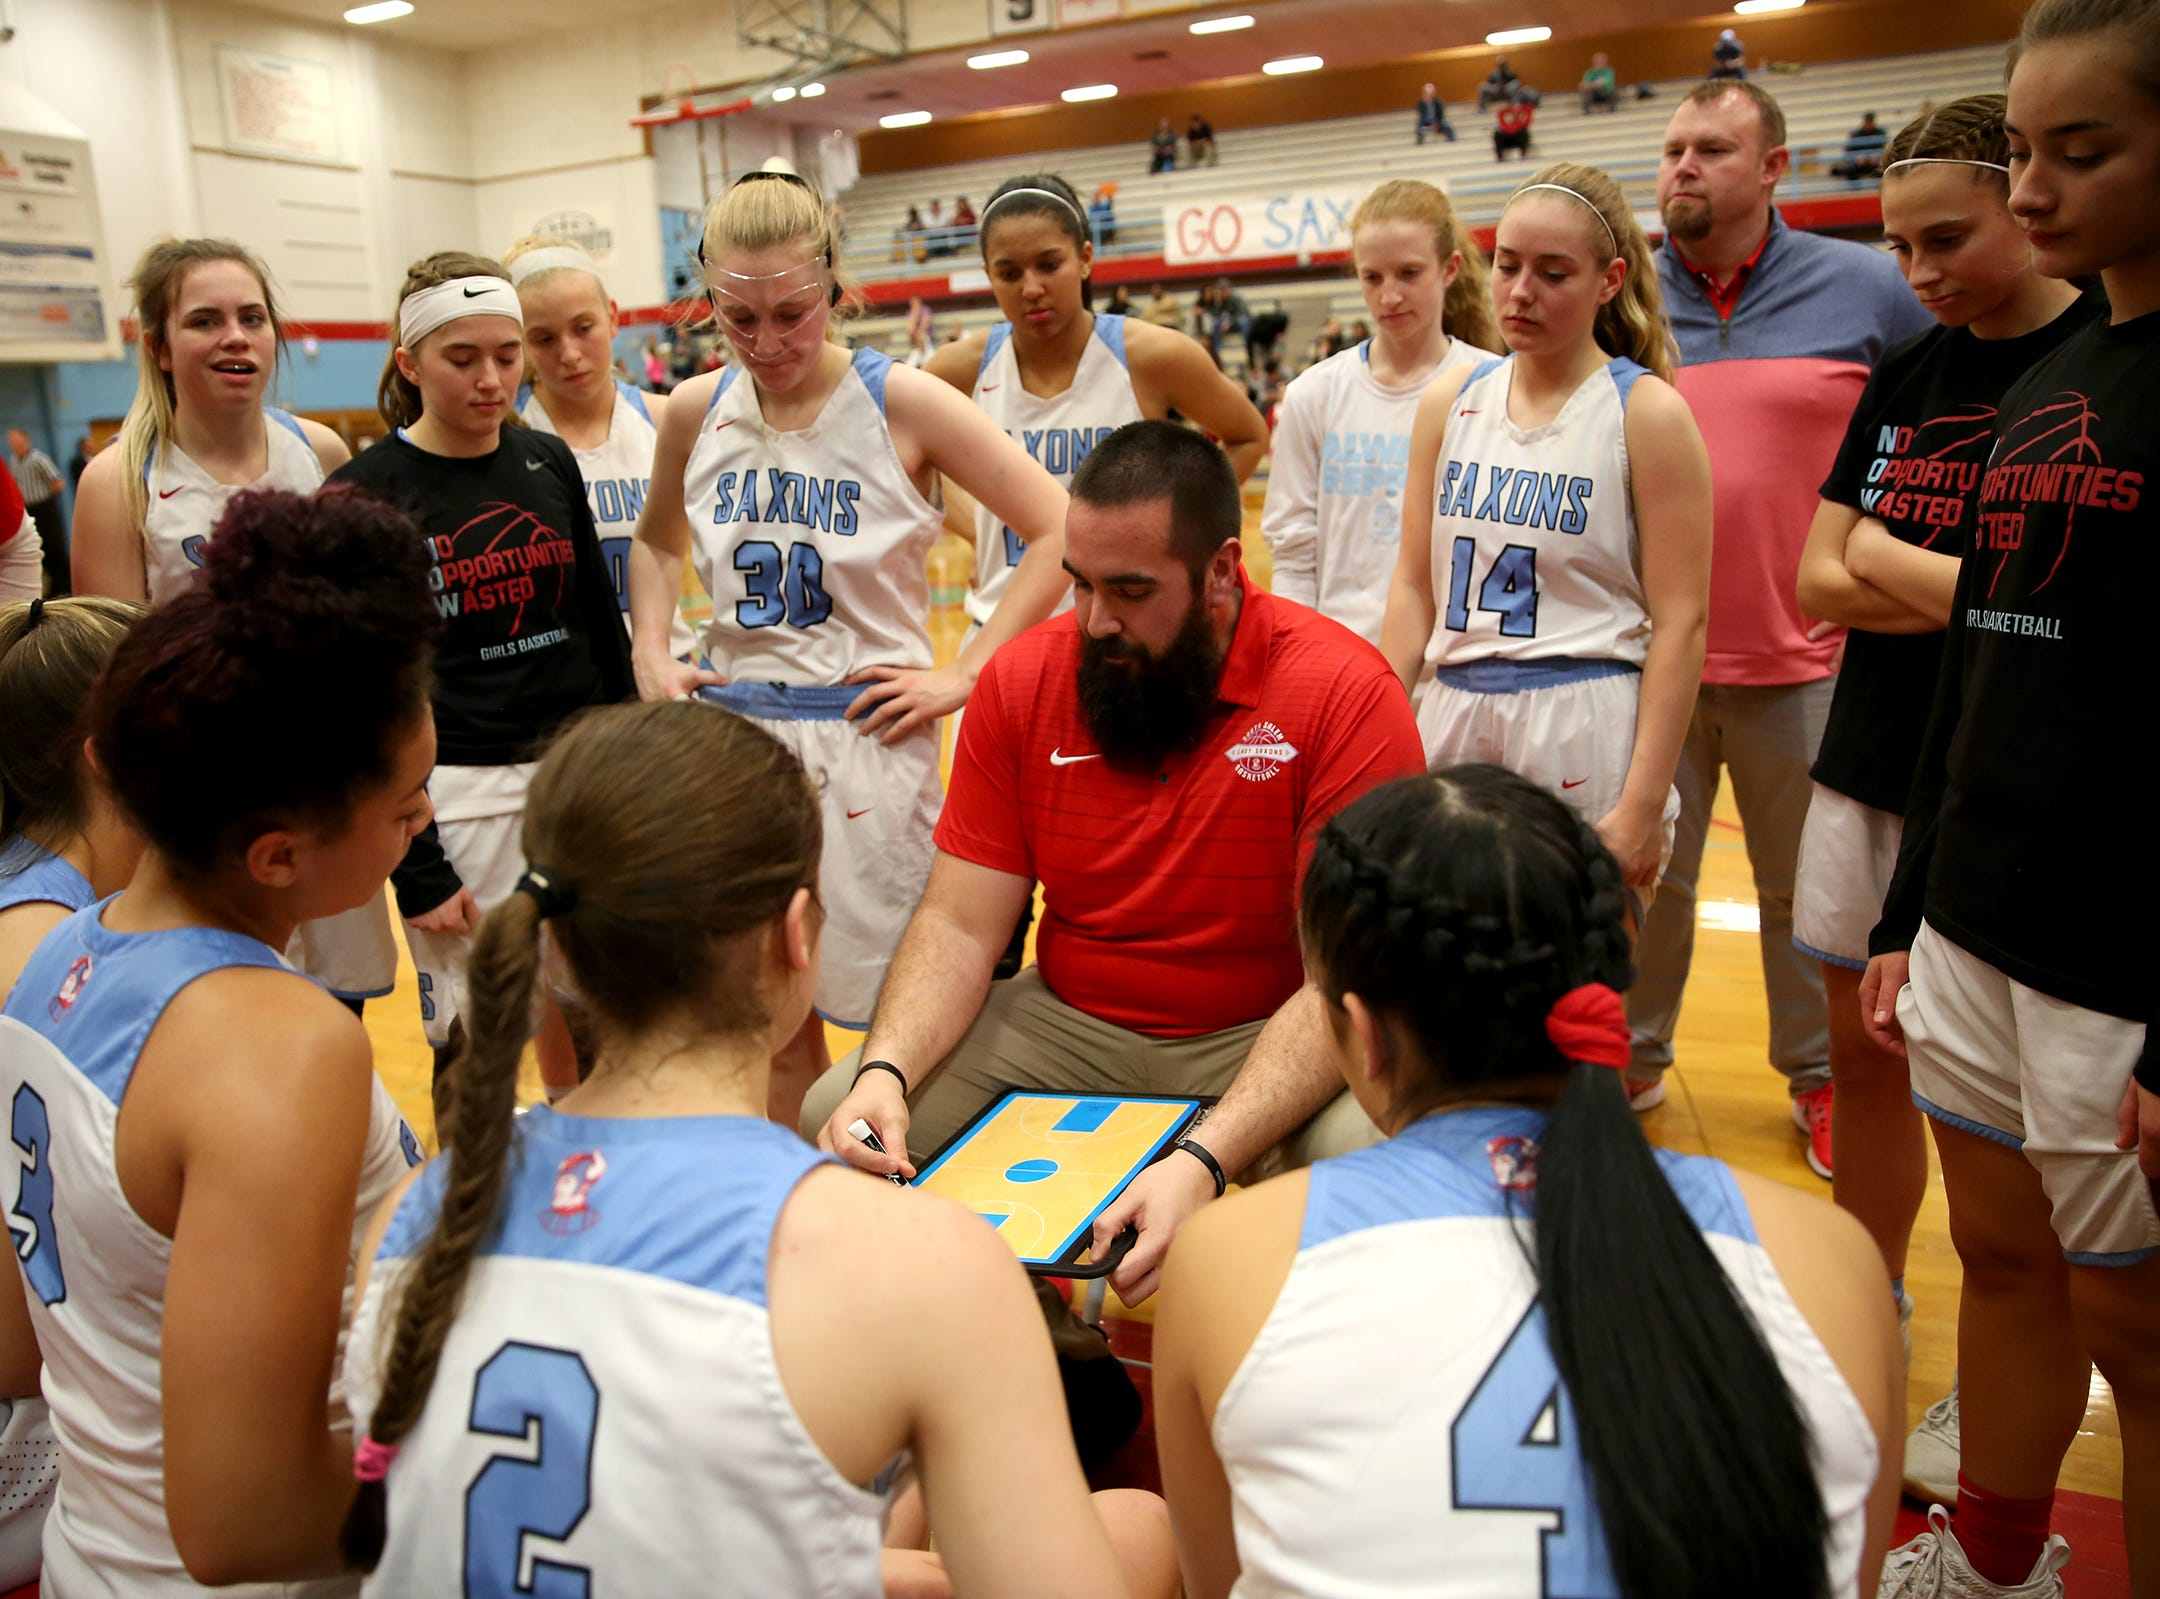 South Salem's head coach Adrian Lewis talks to his team during the South Salem High School girls basketball game against McNary High School in Salem on Thursday, Jan. 31, 2019.